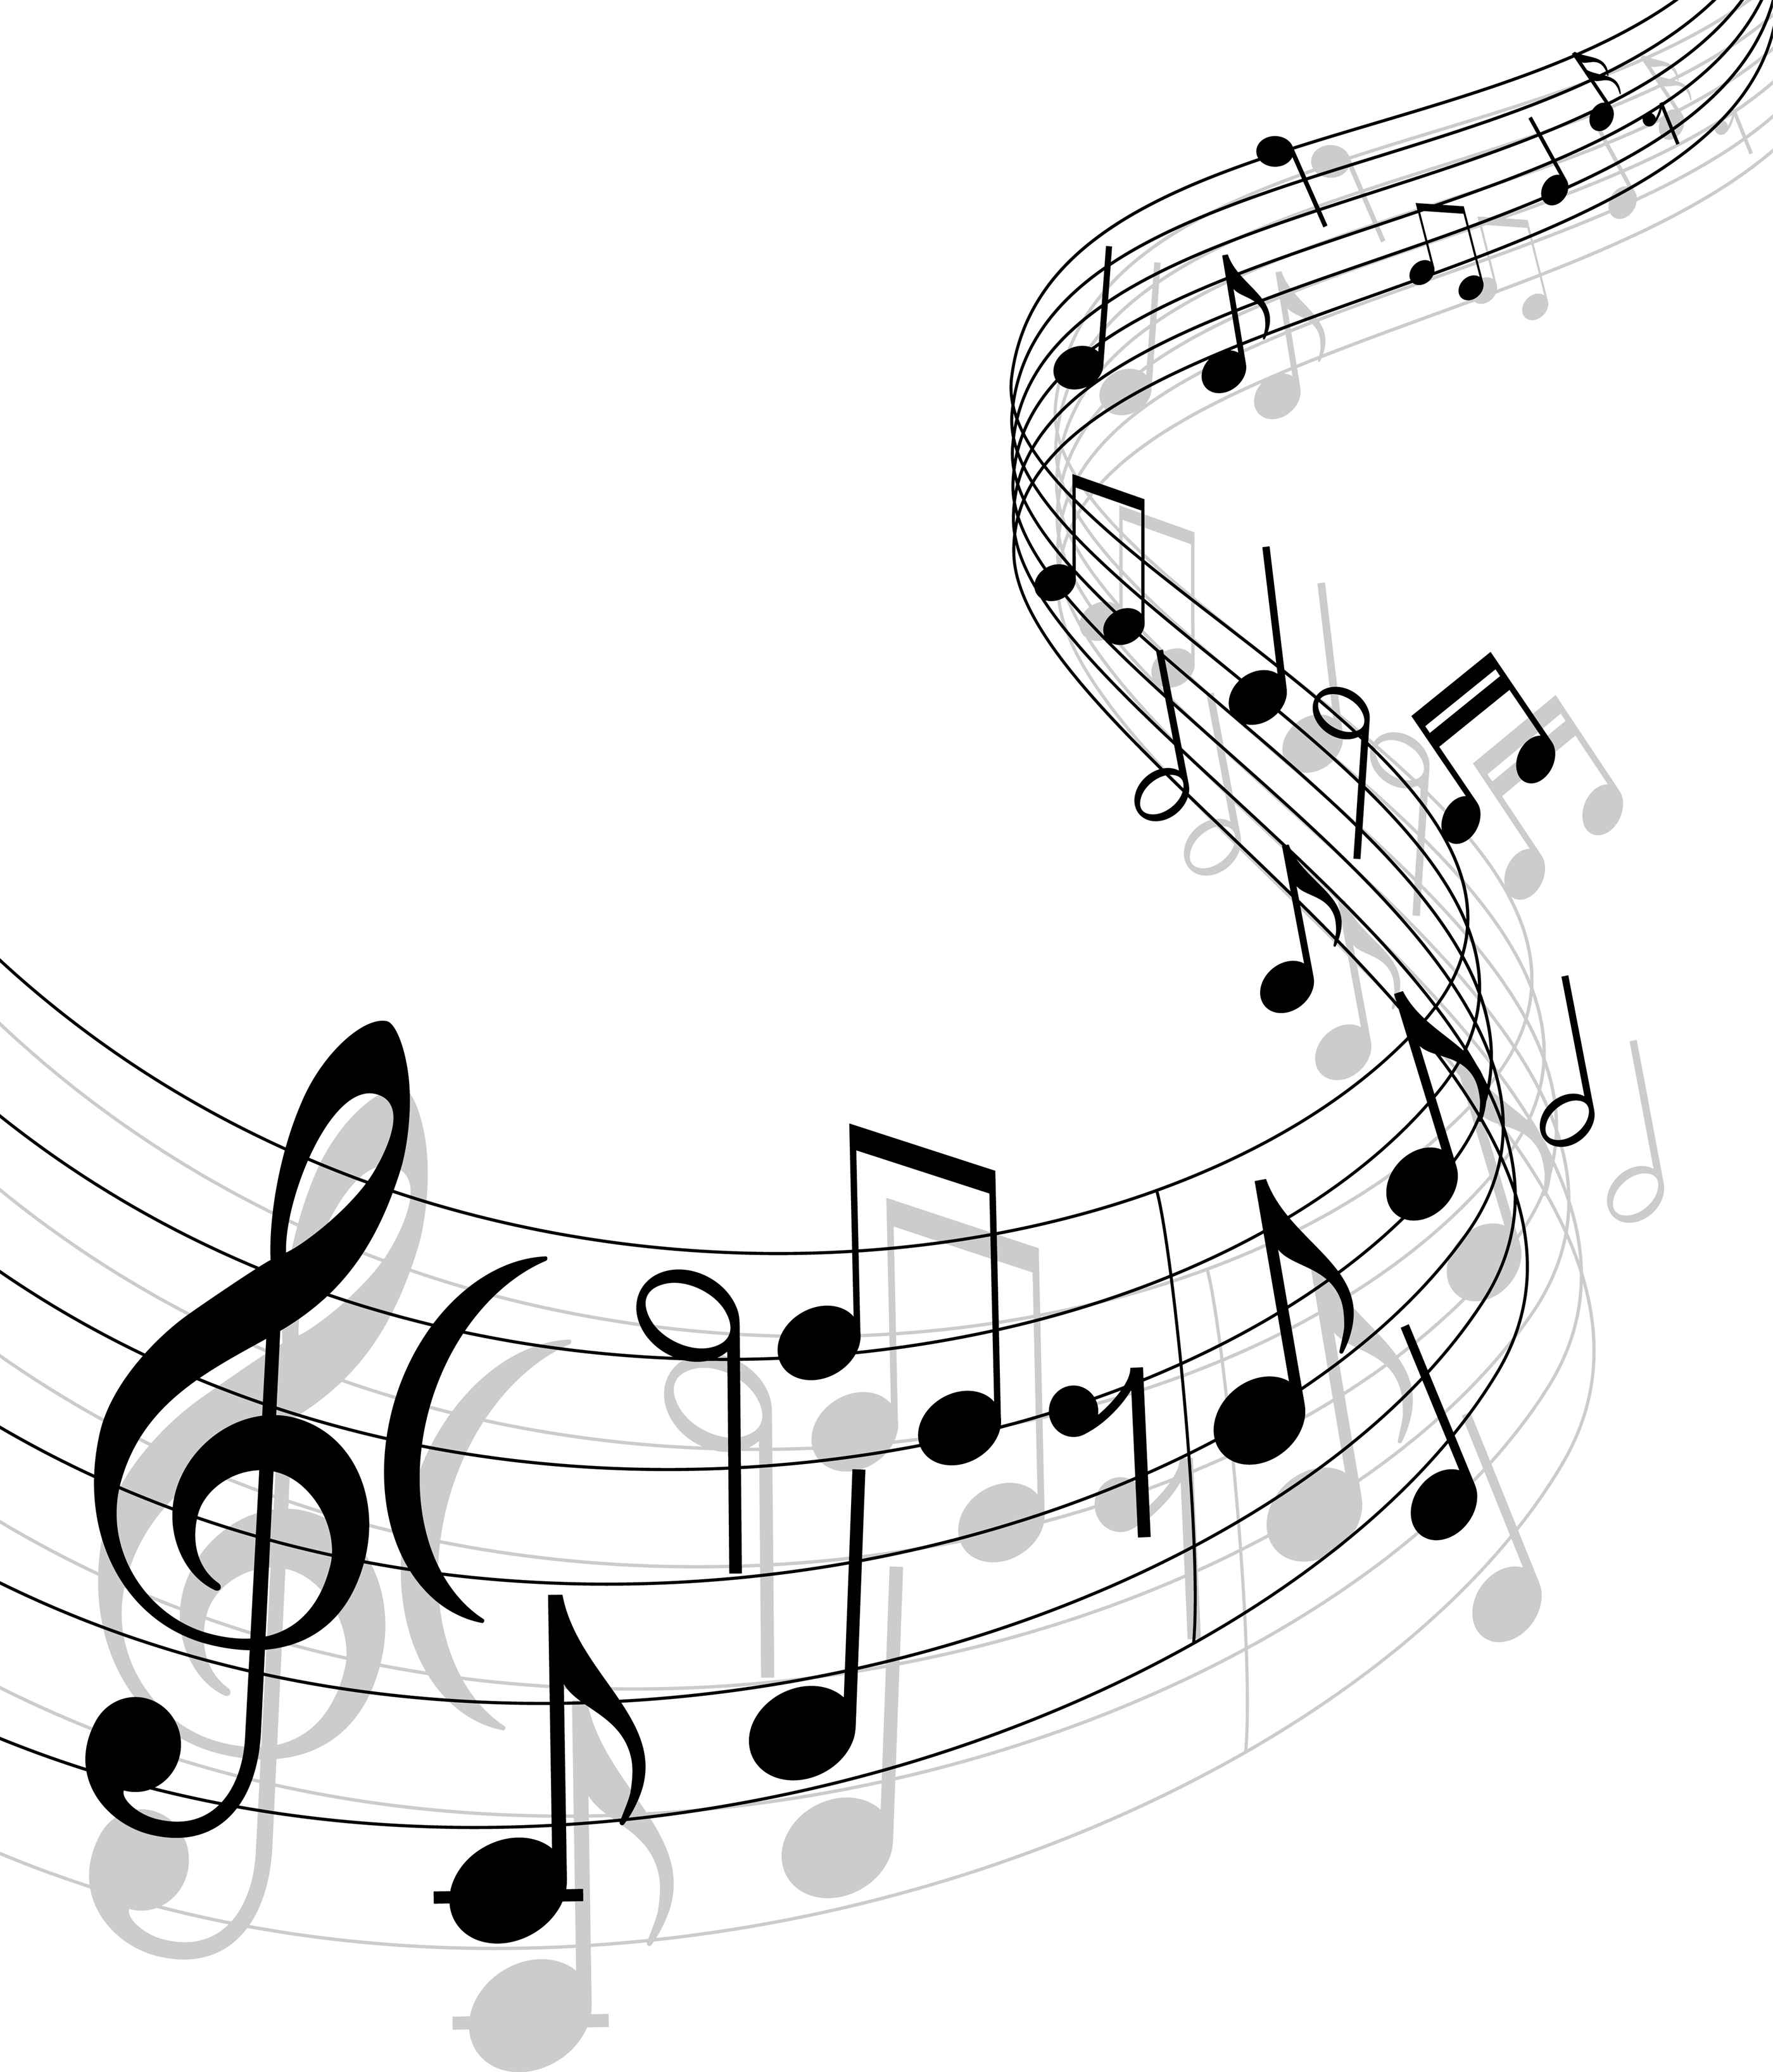 Music note musical notes music musical note clipart free vector for